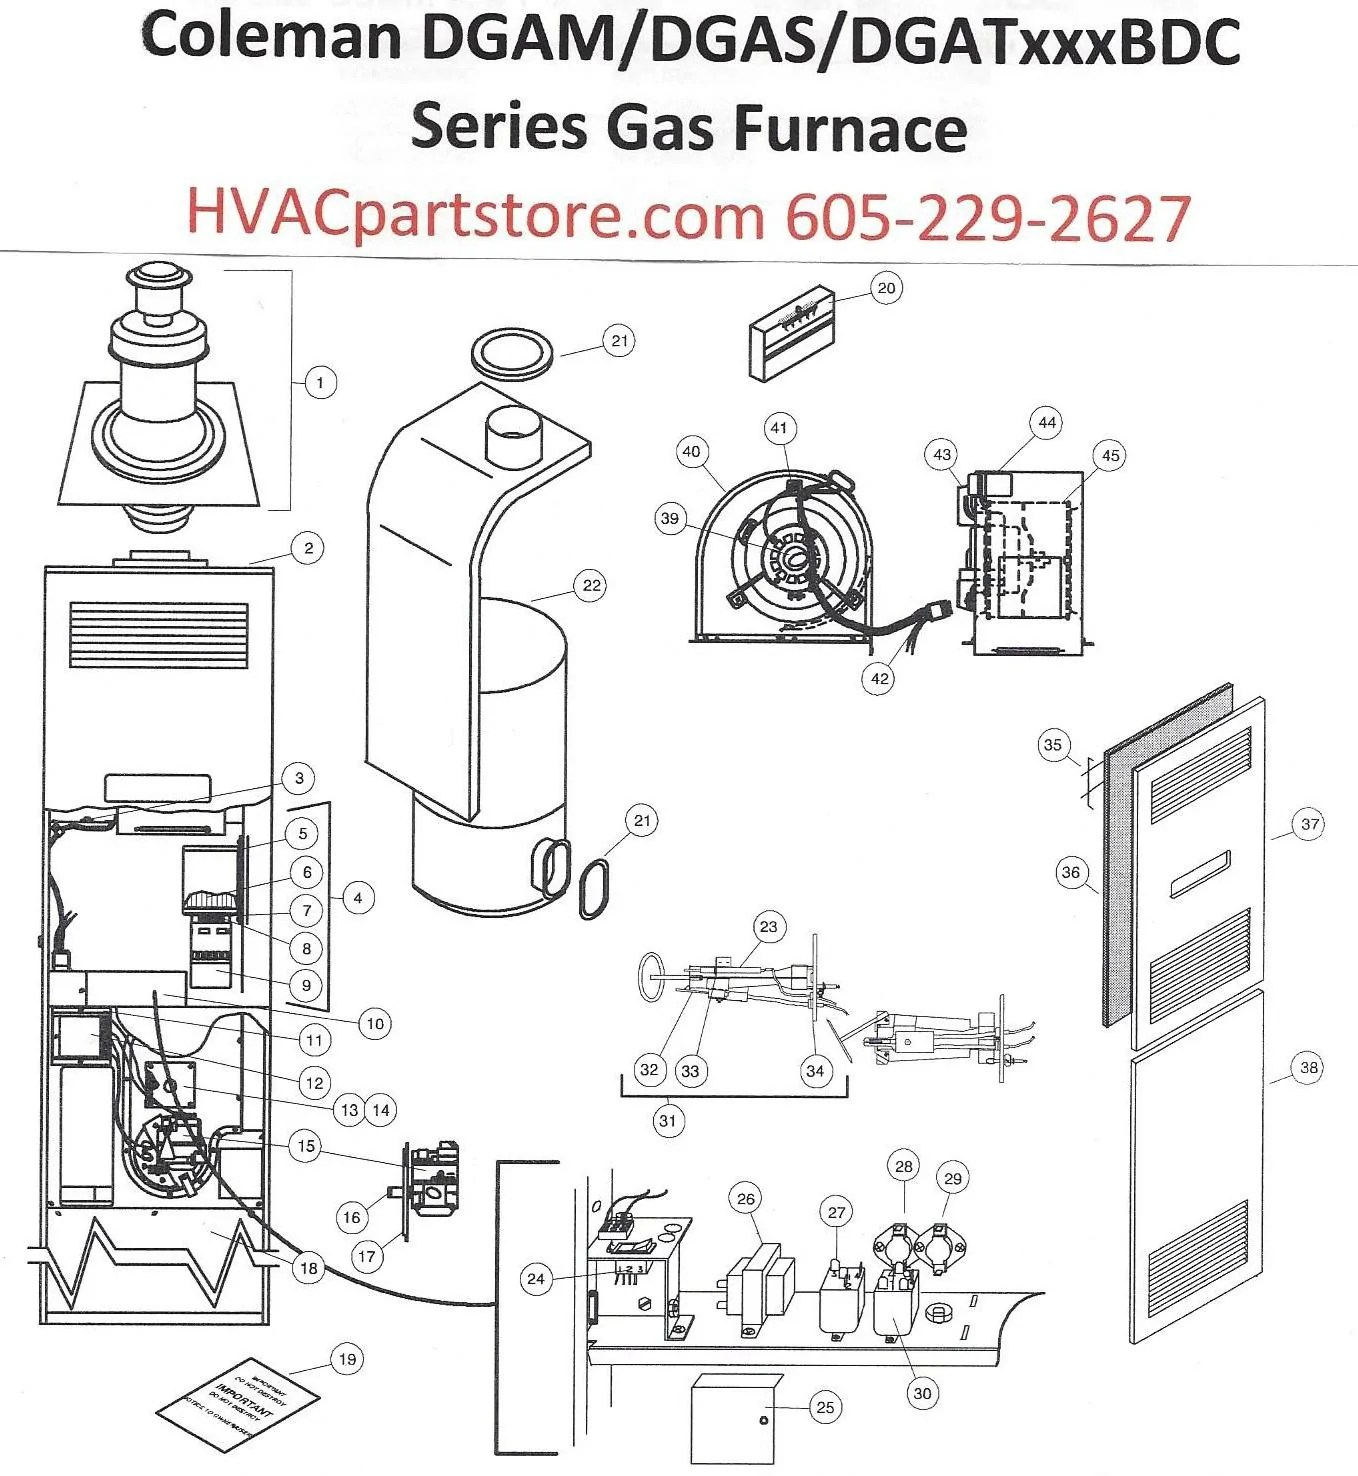 dgat056bdc coleman gas furnace parts hvacpartstore coleman evcon gas furnace wiring diagram coleman gas furnace diagram [ 1358 x 1476 Pixel ]